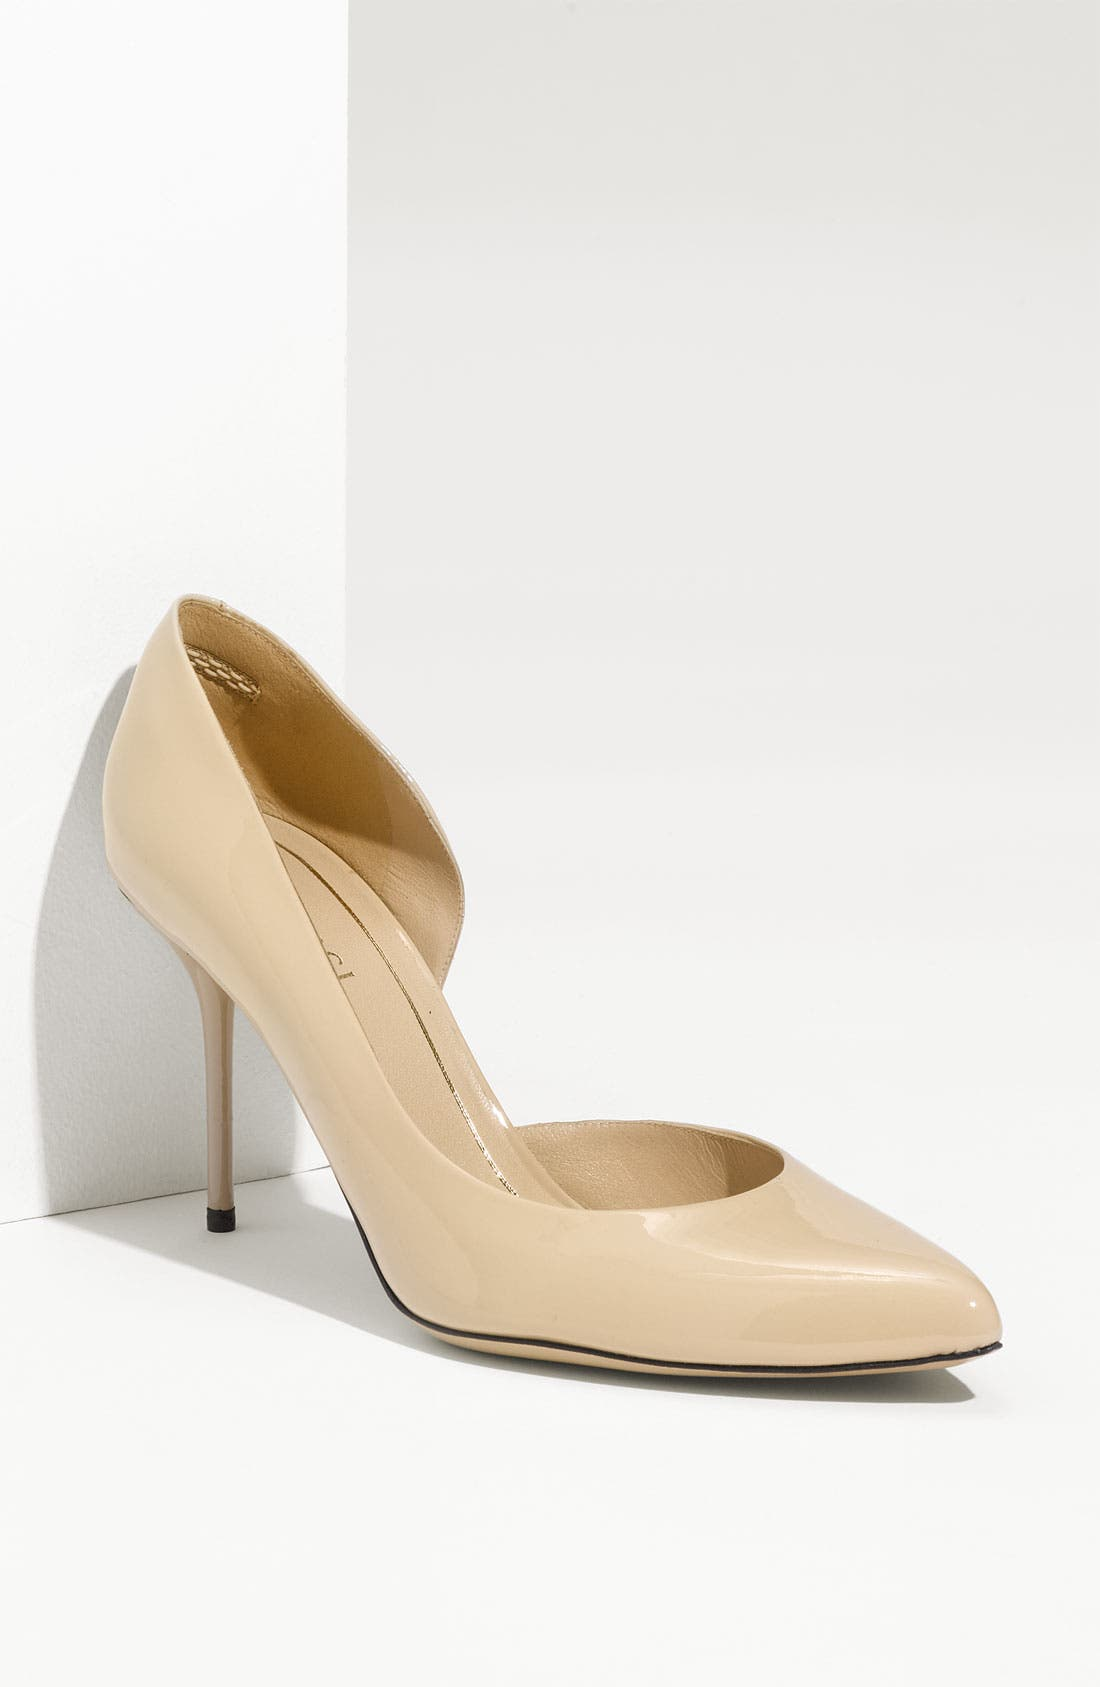 Alternate Image 1 Selected - Gucci 'Noah' d'Orsay Pump